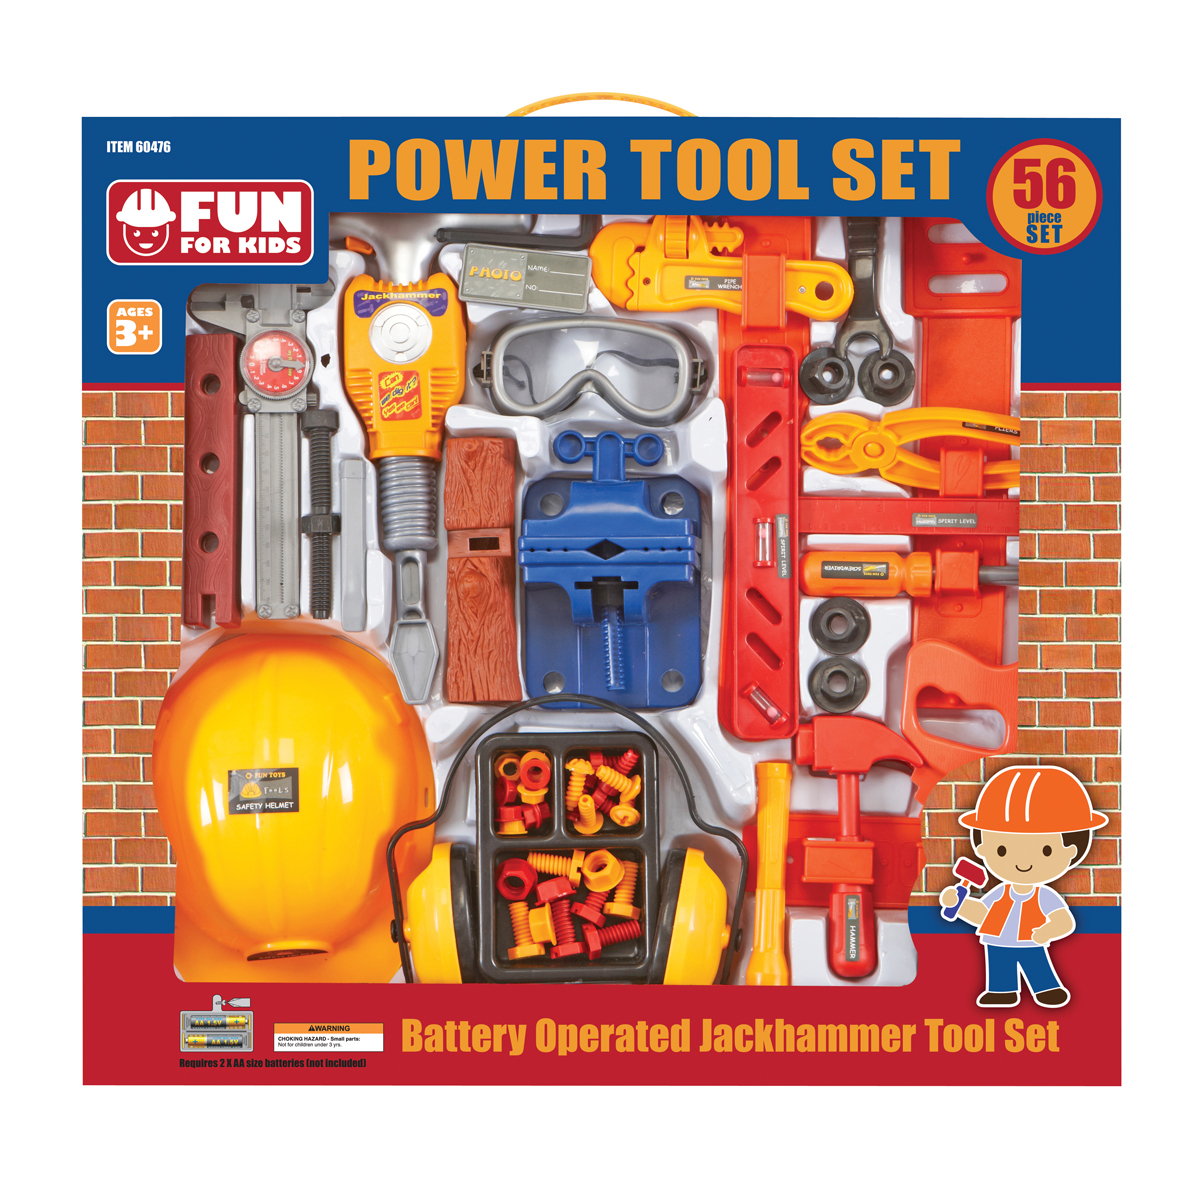 Toy Tool Set : Toy power tool set pc